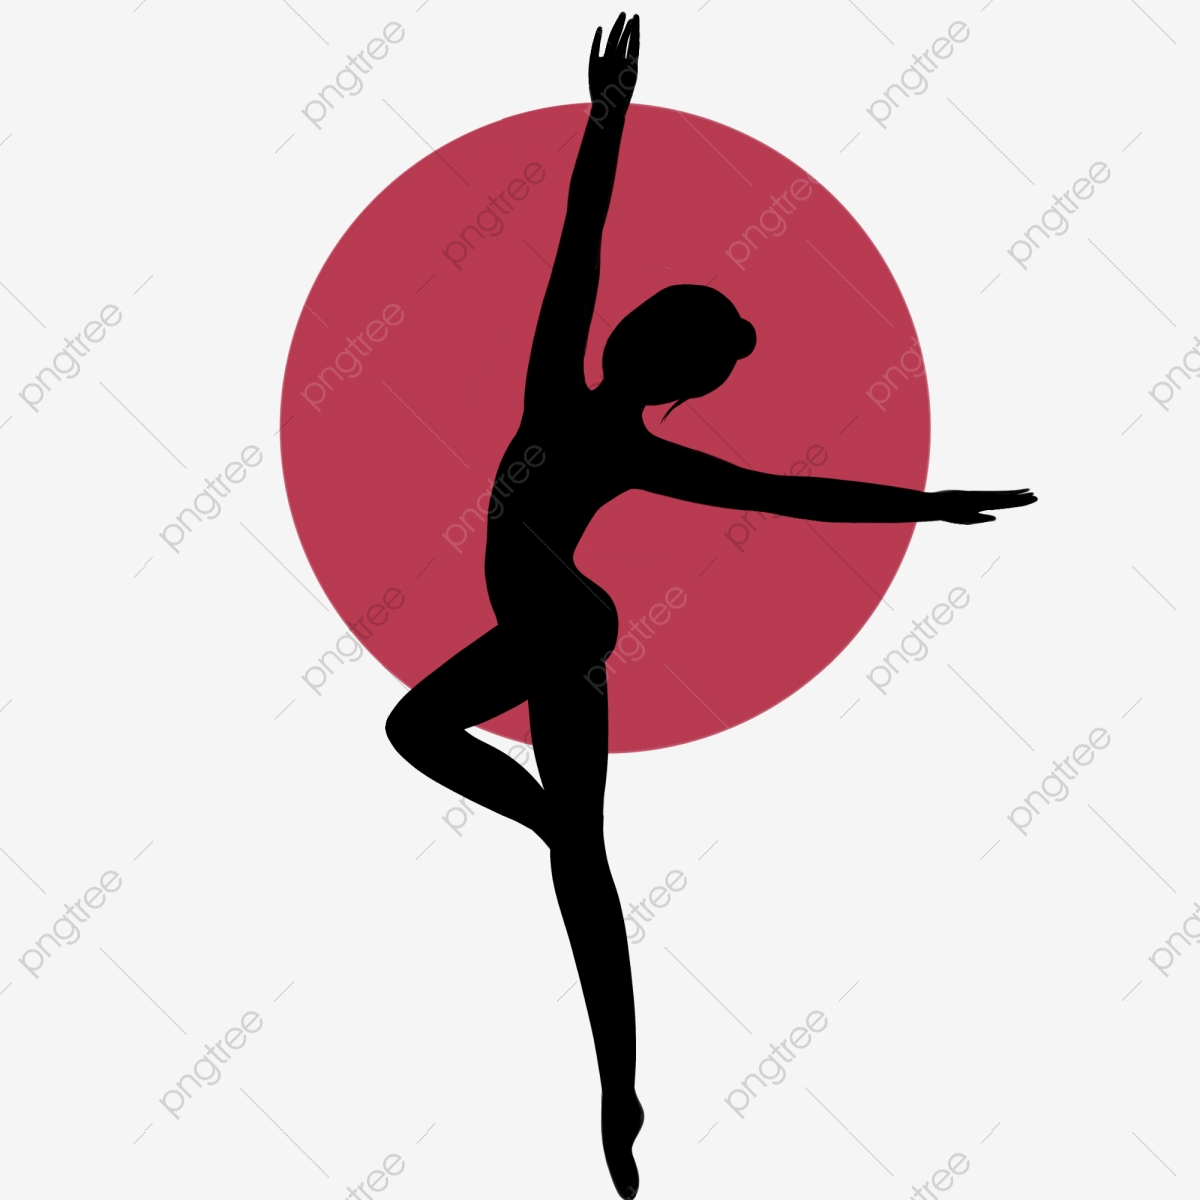 Woman Silhouette Yoga Pose Health Yoga Contour Png Transparent Clipart Image And Psd File For Free Download